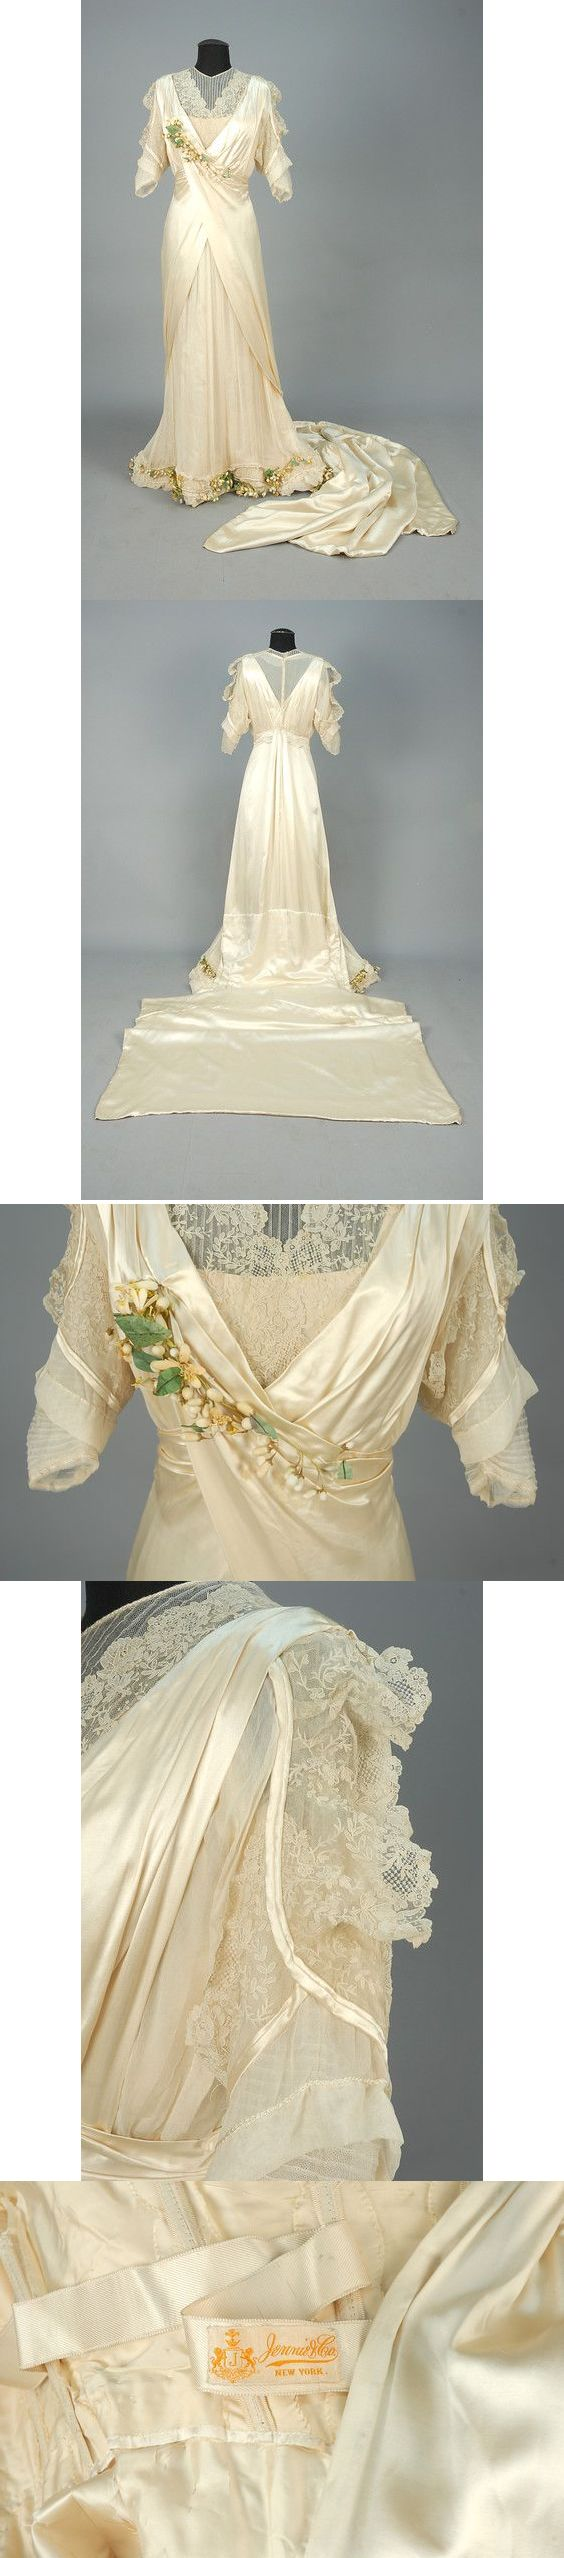 Trained wedding gown with lace and orange blossom trim, 1920s. Ivory charmeuse pleated and wrapped bodice having gauze short sleeve and bodice insert trimmed in needle lace with orange blossom corsage, open skirt over gathered front panel of gauze on silk decorated at hem with a wavy band of self ruffles, silk piping and orange blossoms, long square train. Petersham label: Jennie & Co. New York. B-34, W-24, H-38, Front L-56, back L-69 plus 42 inch train. $360